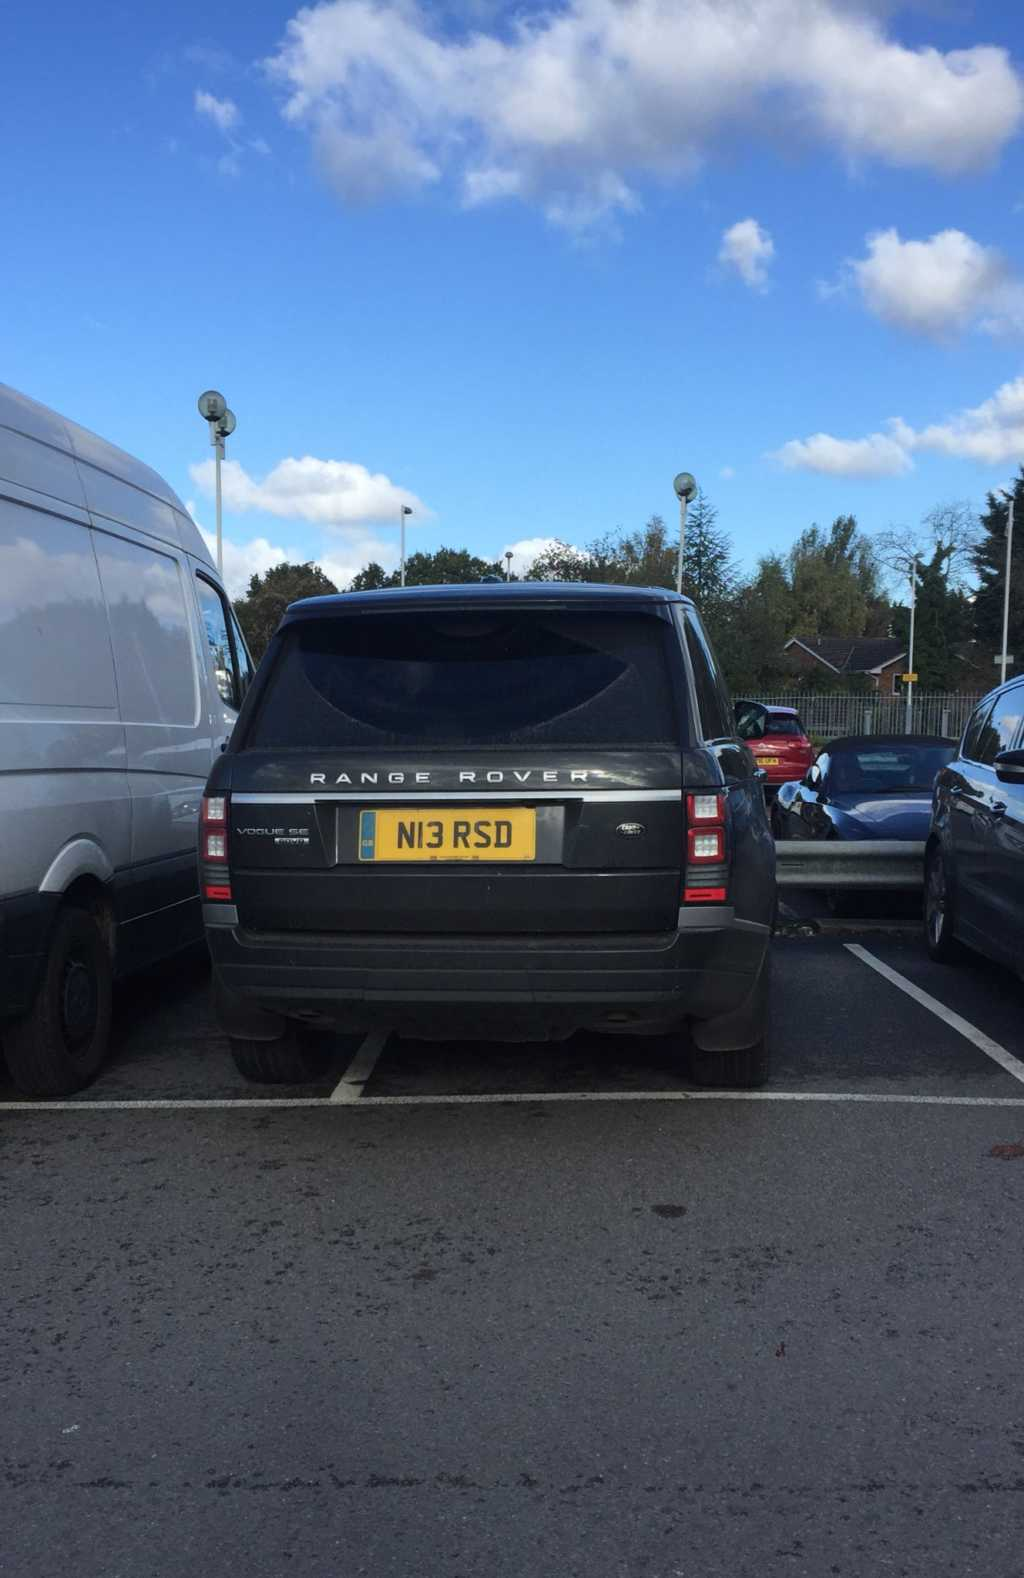 N13 RSD is a Selfish Parker